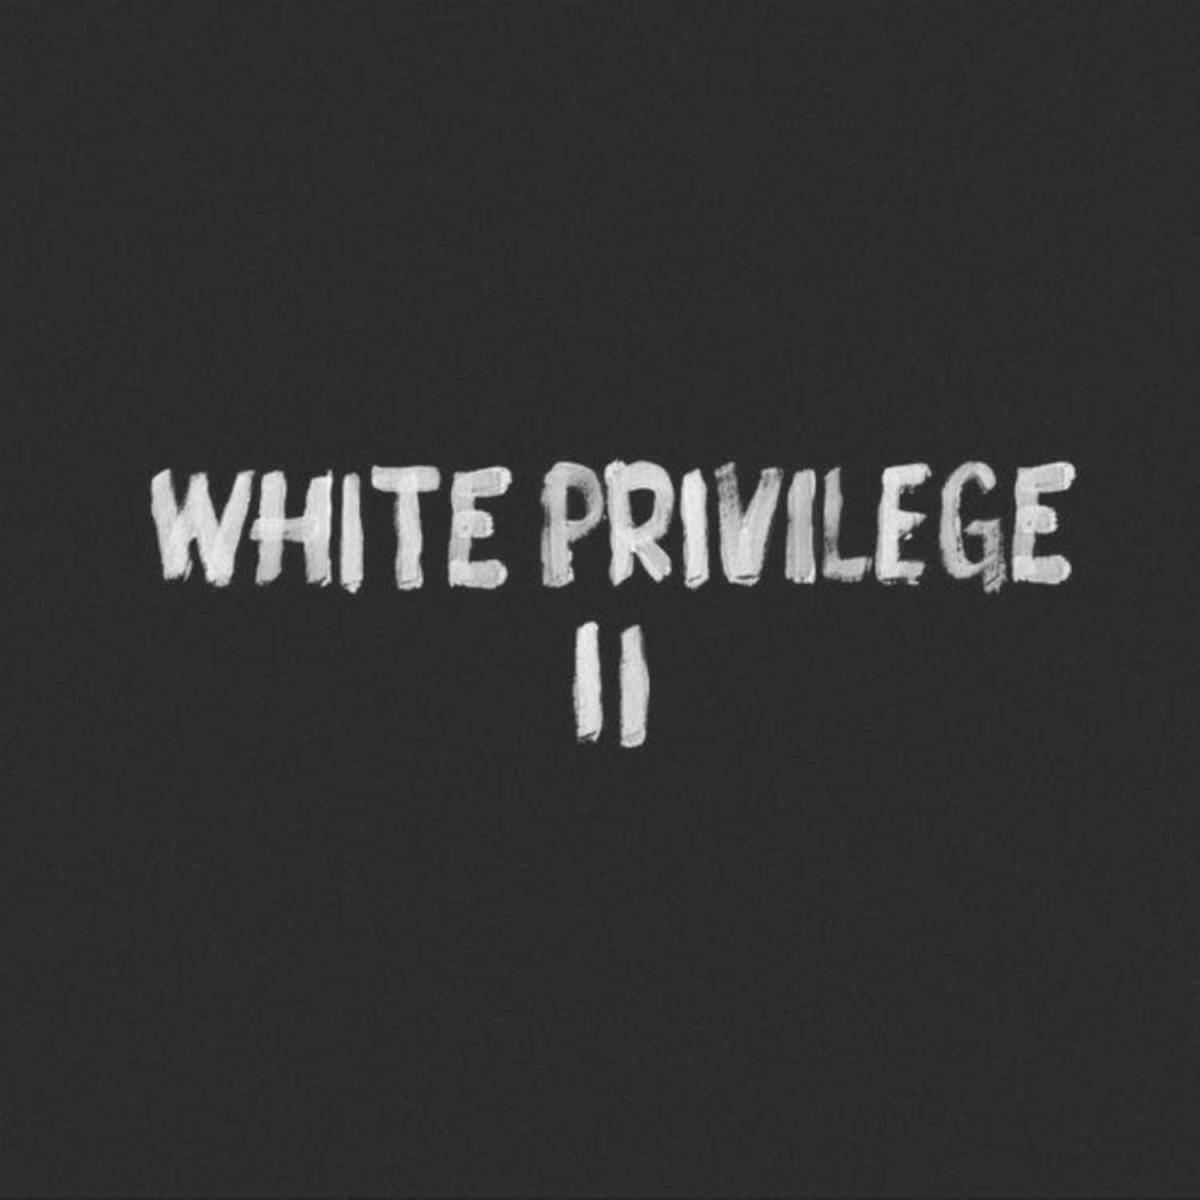 macklemore white privilege 2 white allies and black liberation macklemore white privilege 2 white allies and black liberation south seattle emerald